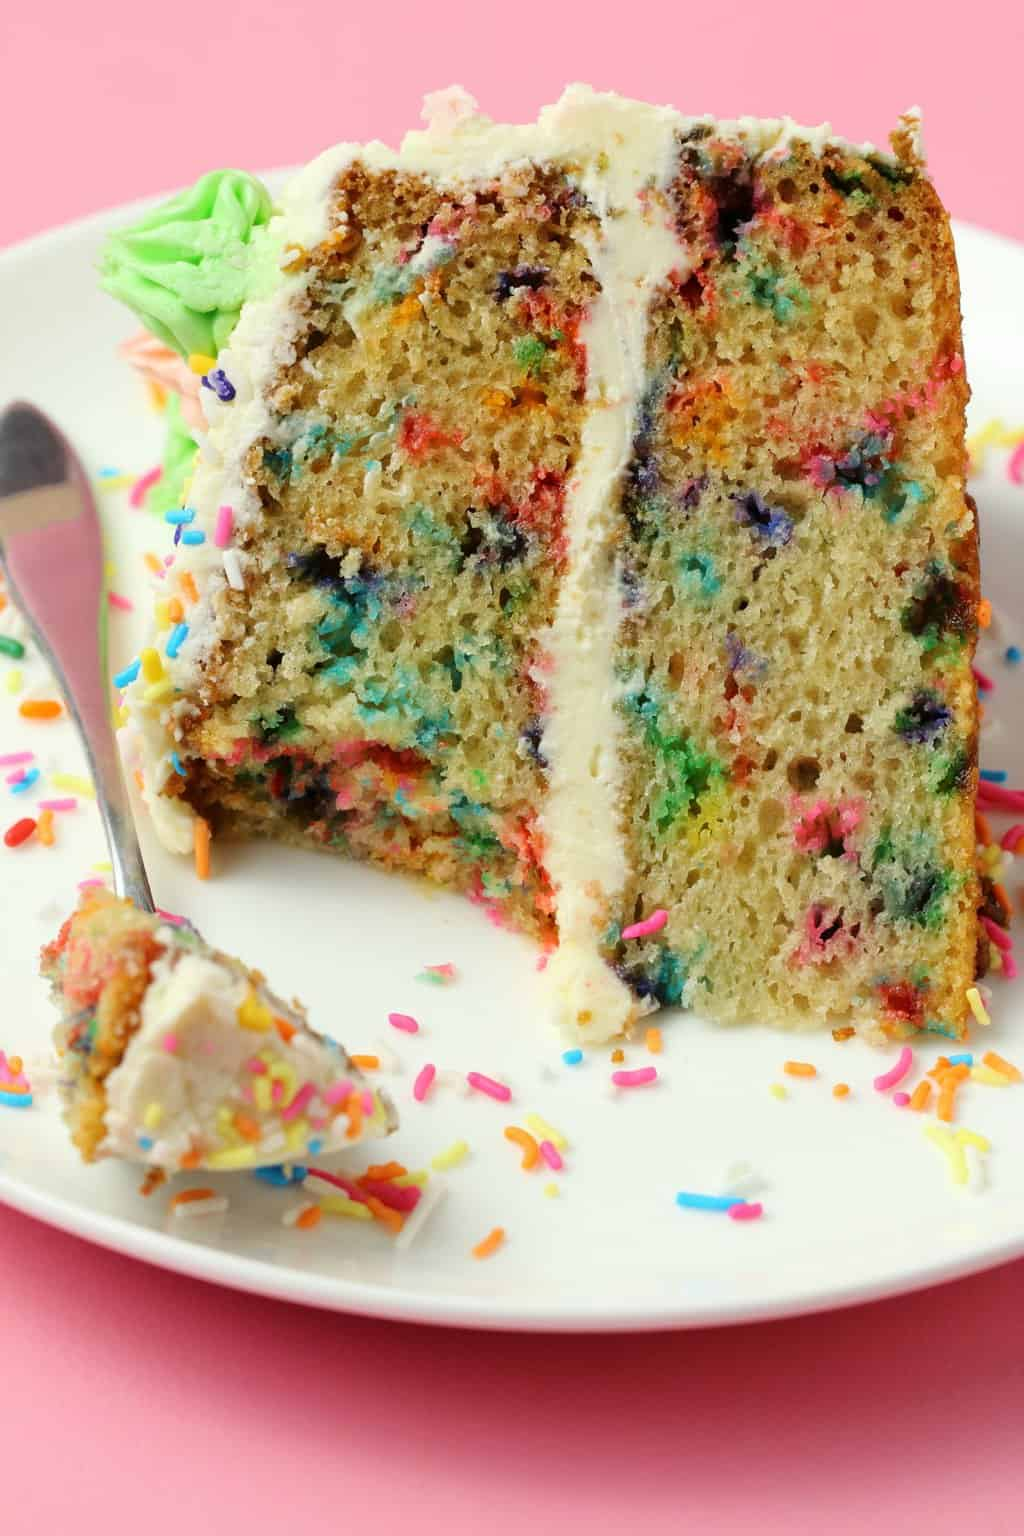 A slice of vegan funfetti cake on a white plate with a cake fork and sprinkles.